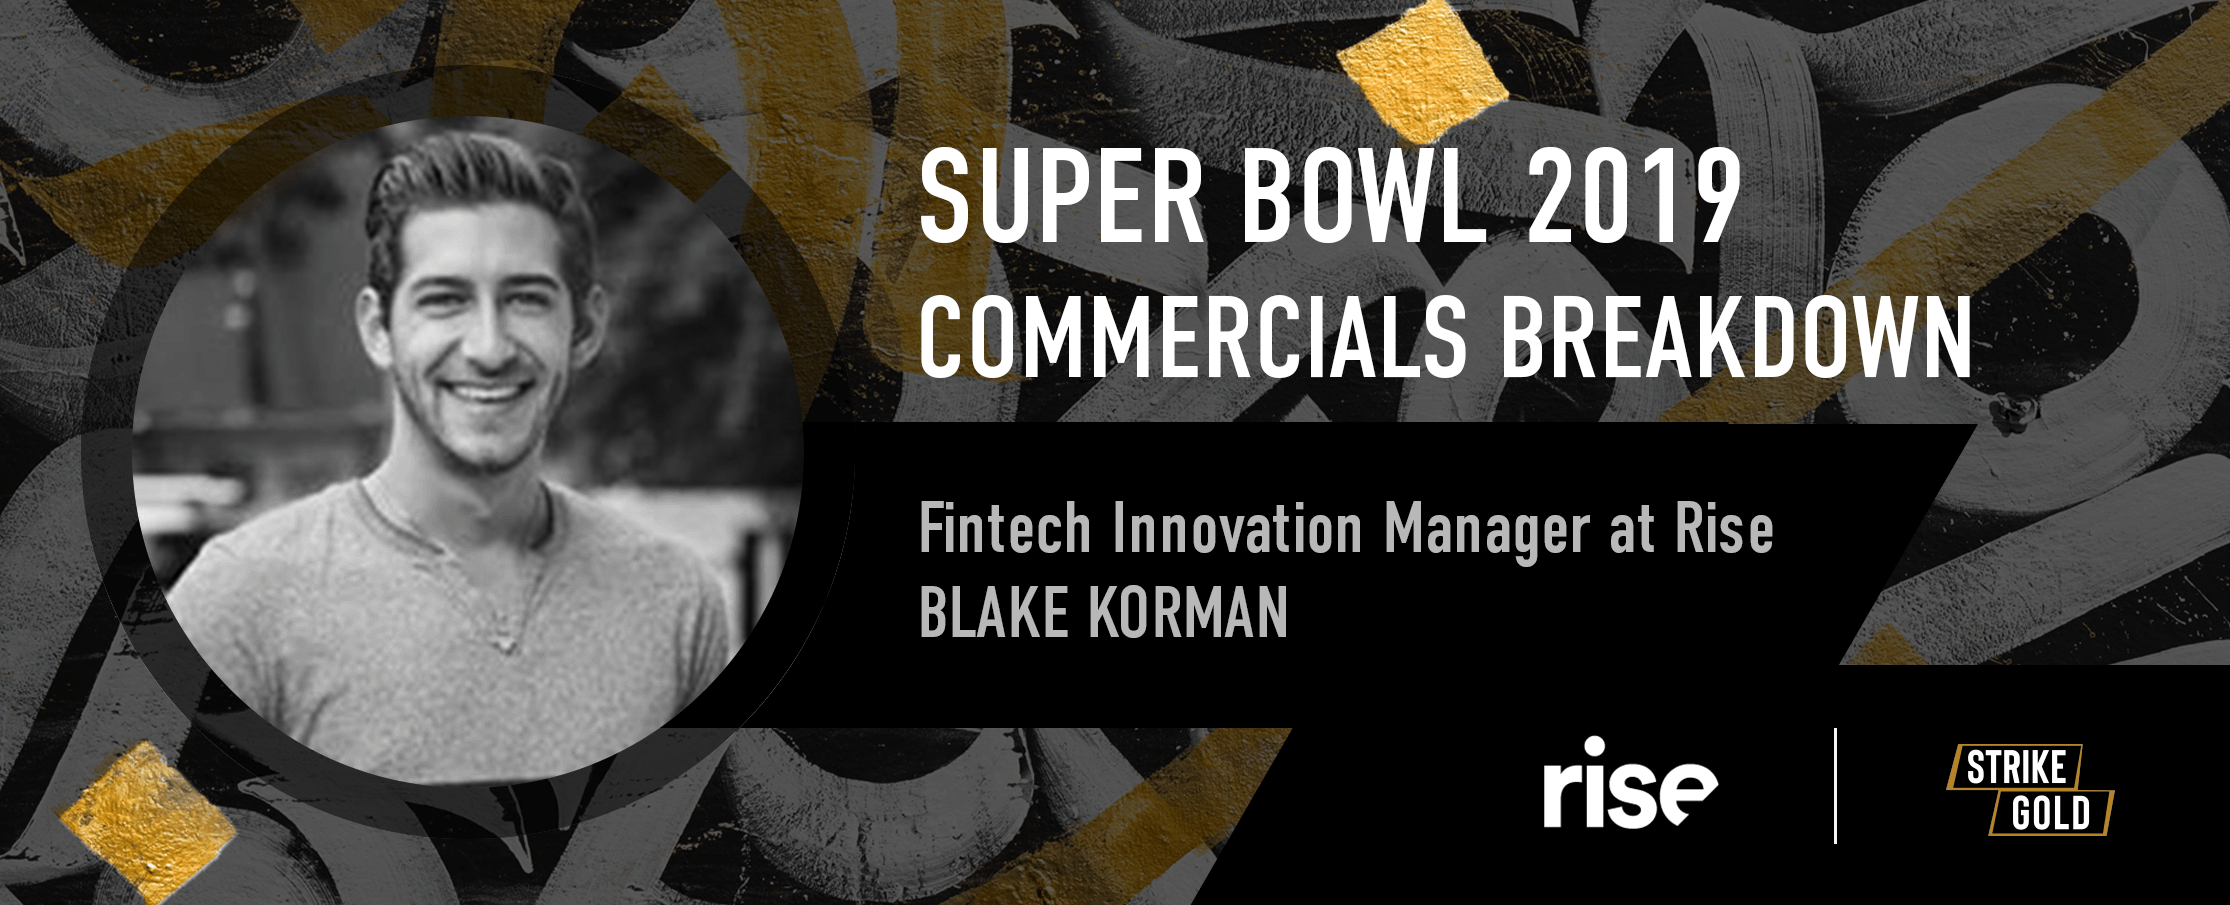 Blake Korman - Super Bowl ads